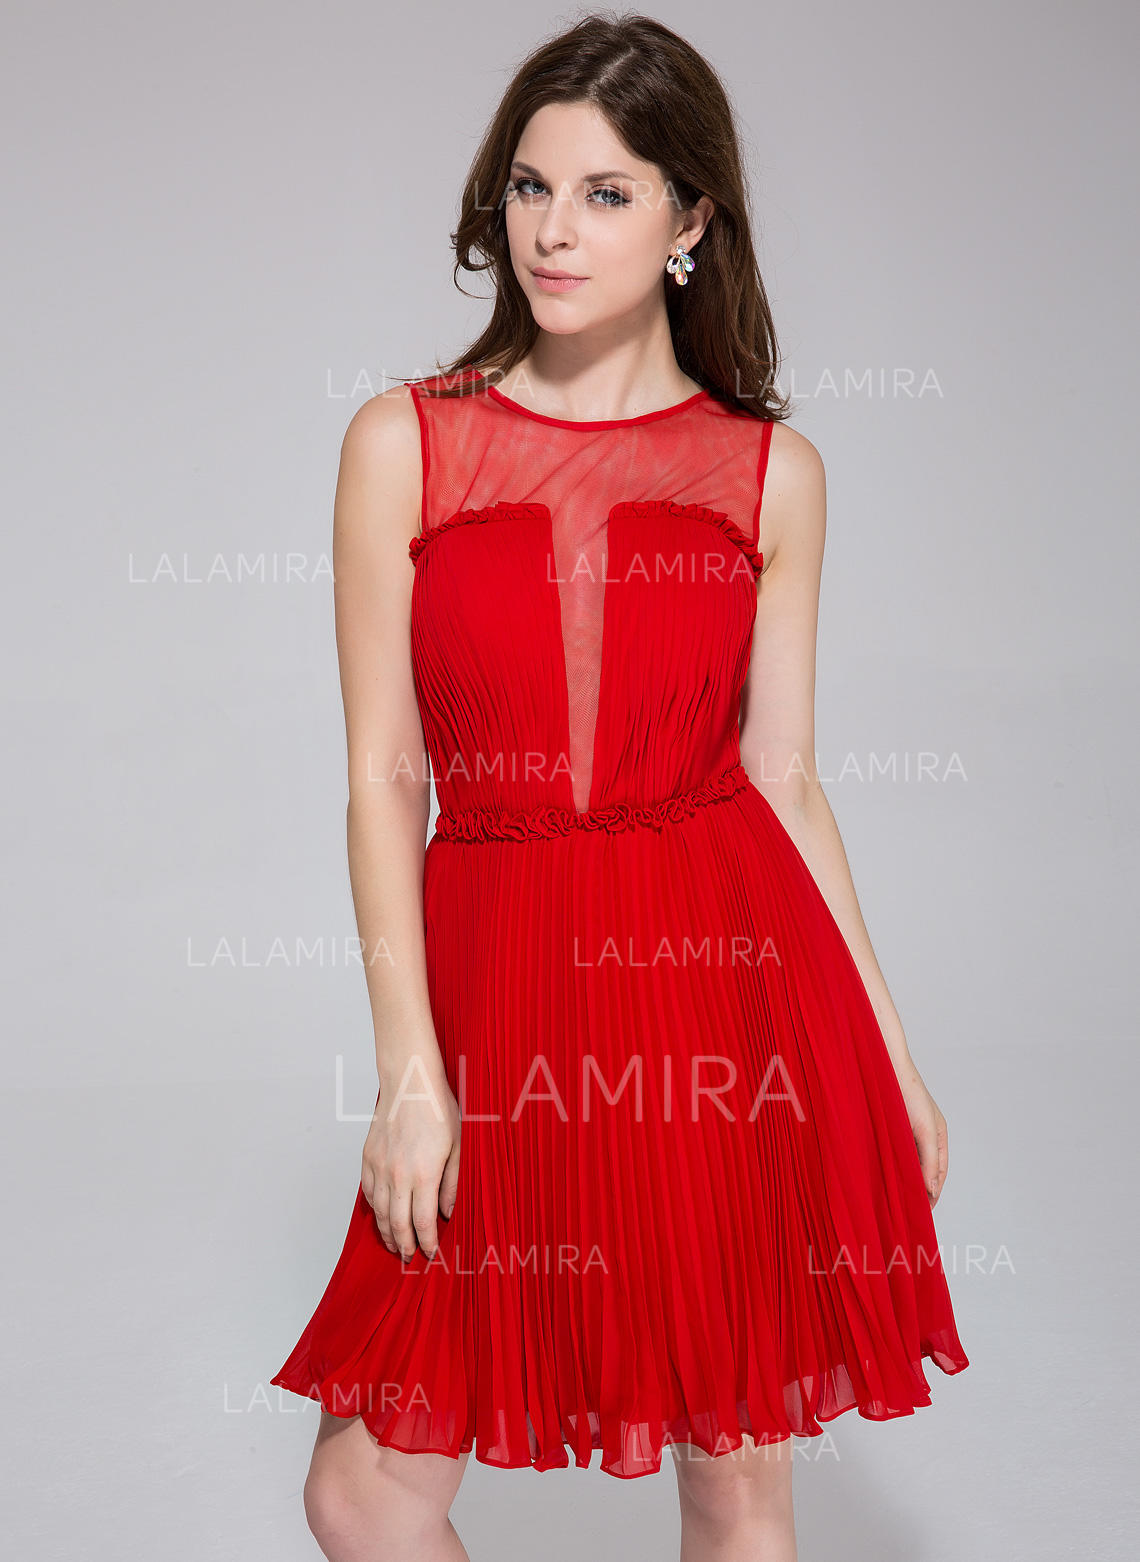 d30c8c5a684 A-Line Princess Chiffon Prom Dresses Flower(s) Pleated Scoop Neck  Sleeveless. Loading zoom